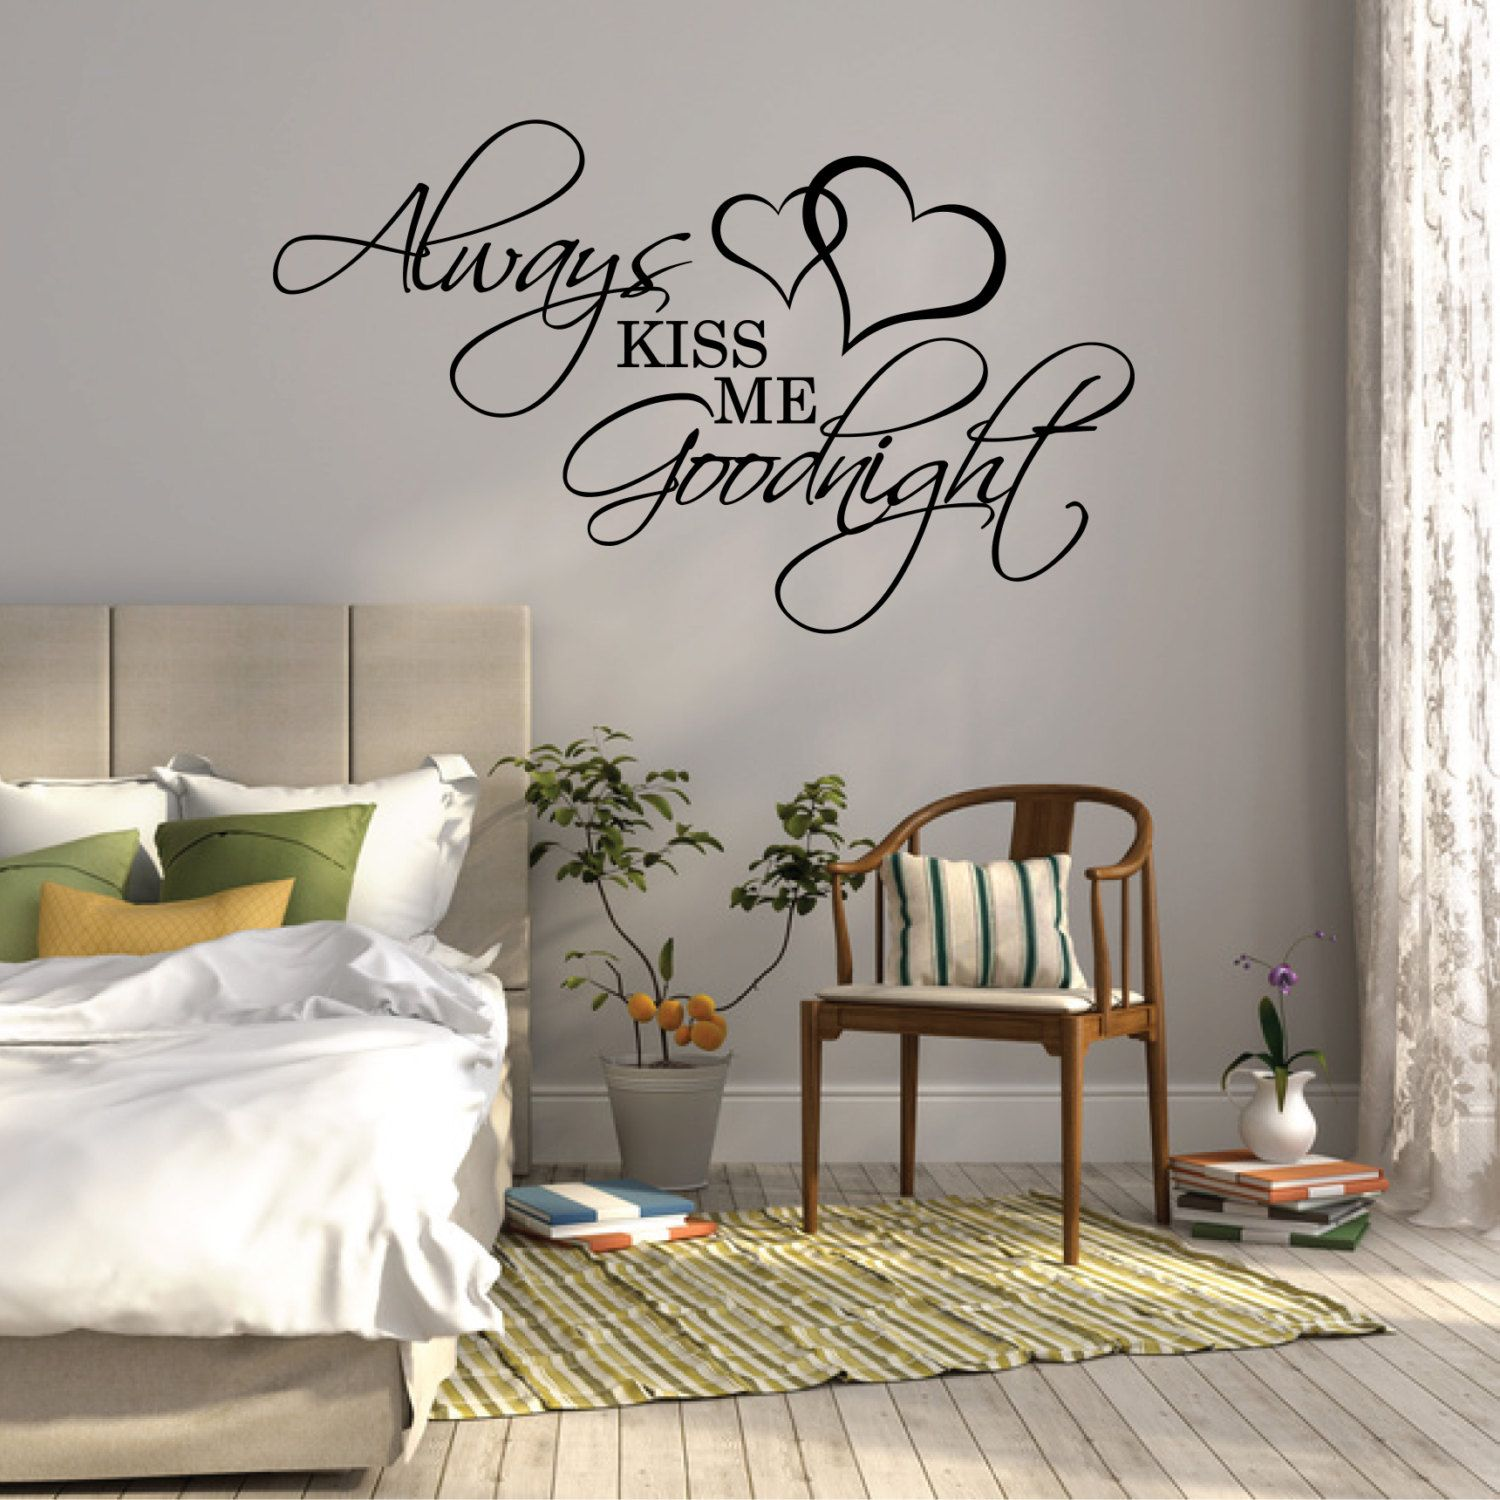 Wall sticker quote always kiss me goodnight over bed for Bedroom wall decor